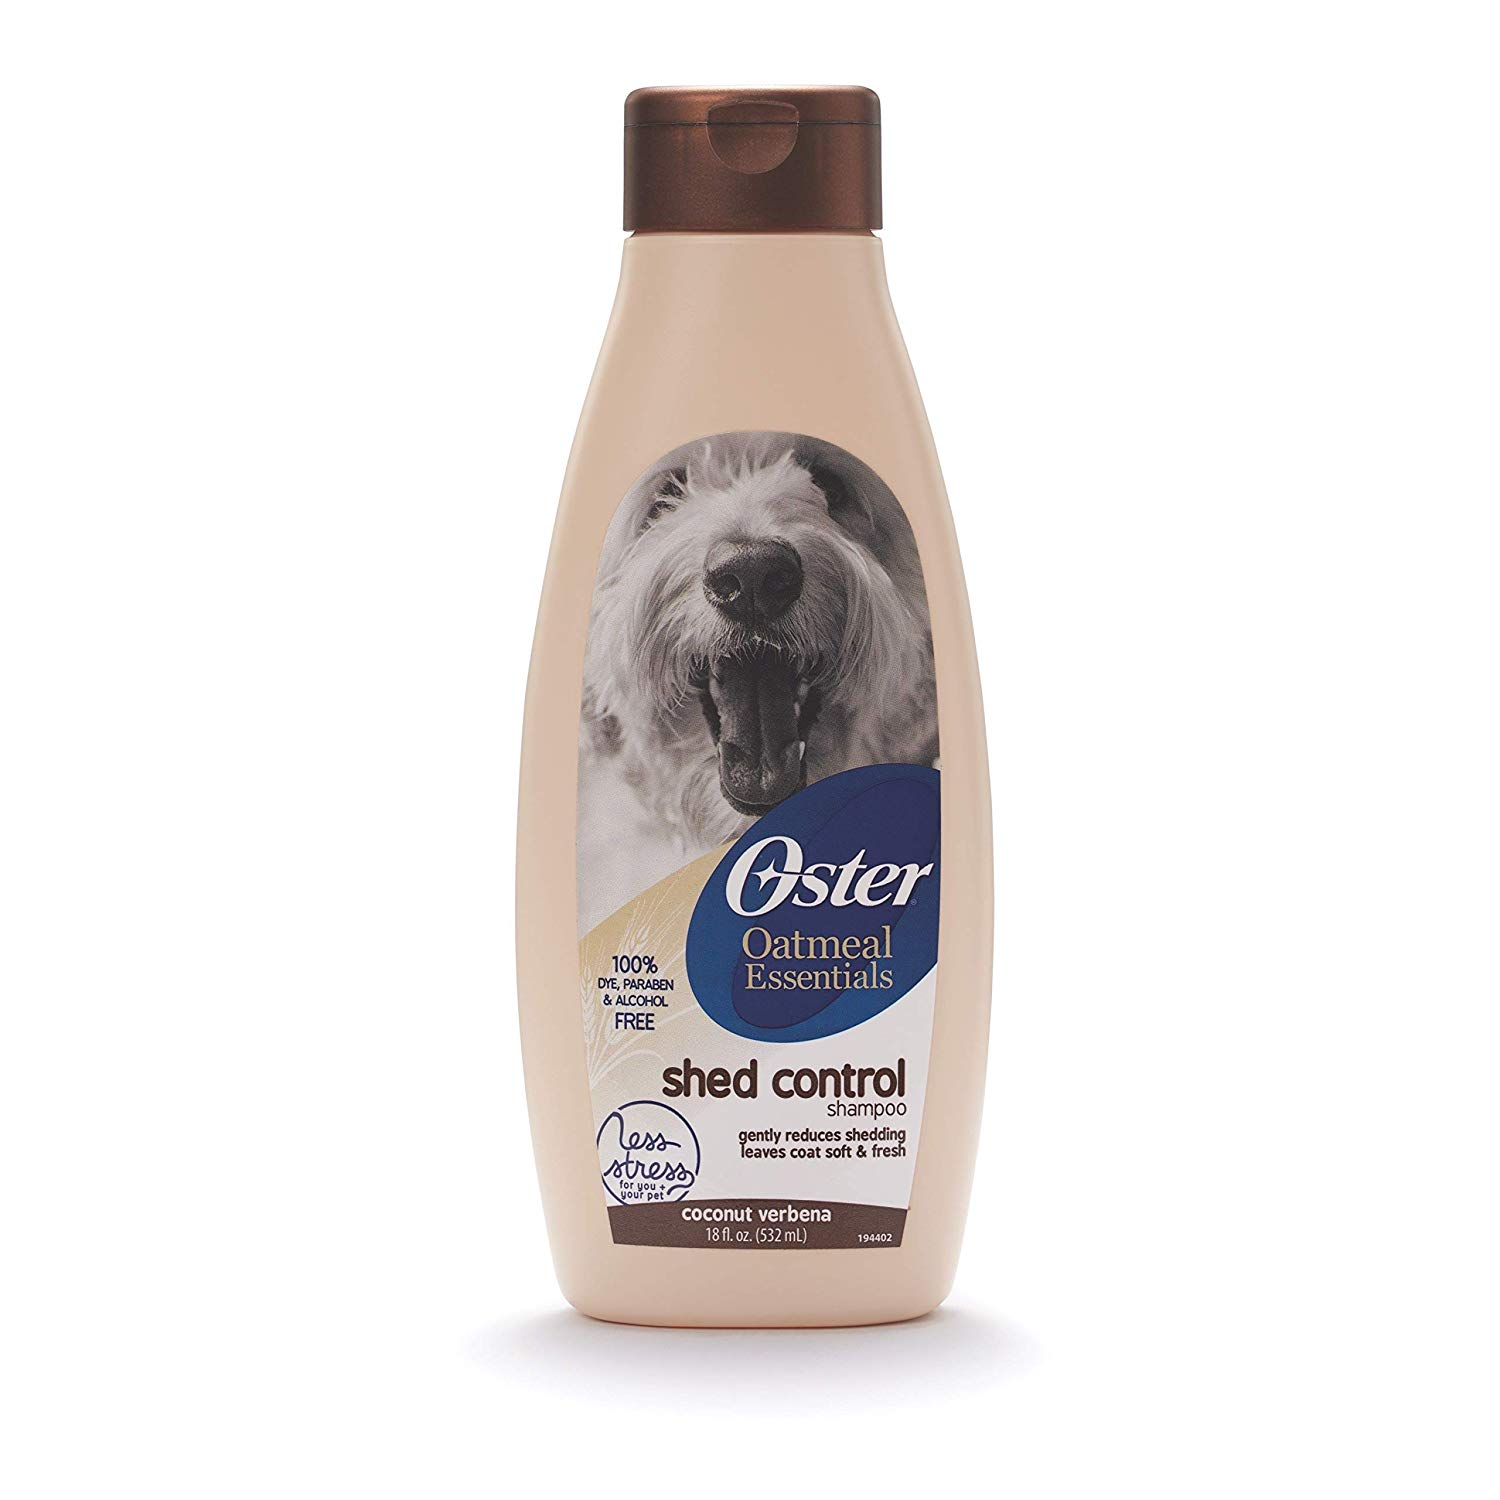 Oster Oatmeal Essentials Shampoo